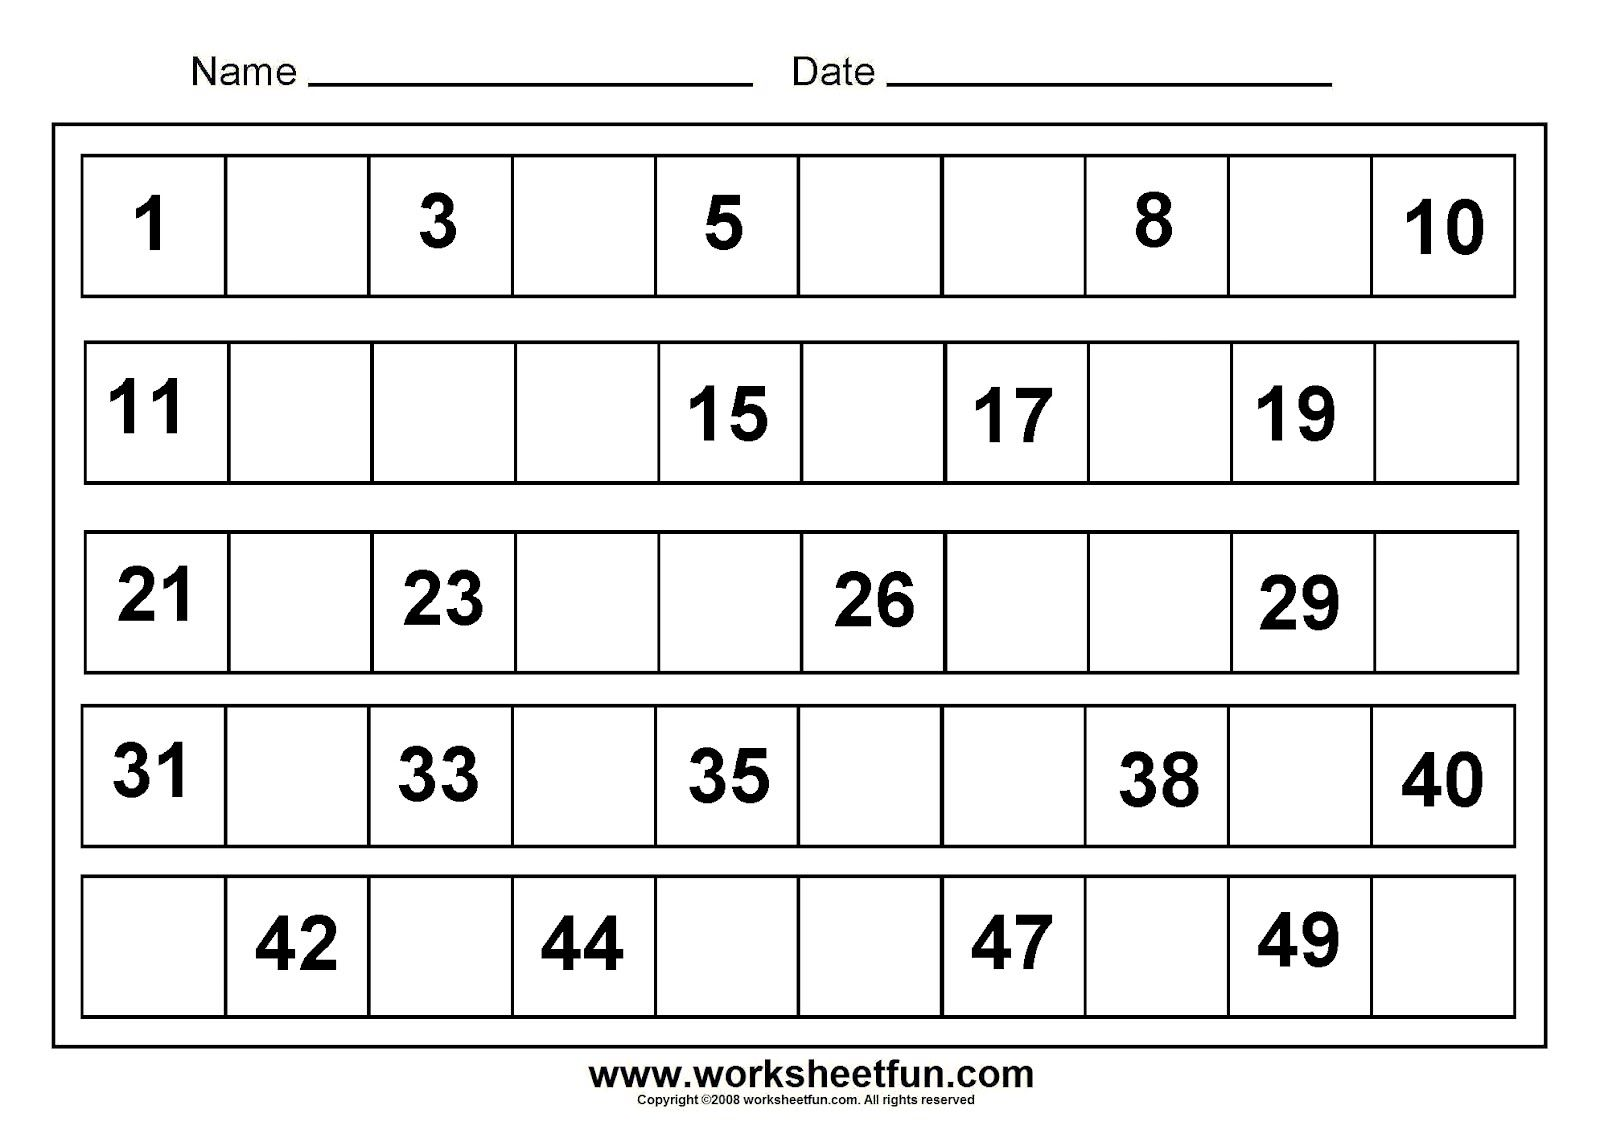 math worksheet : free printable worksheets for numbers 1 50  worksheets : Free Printable Math Worksheets For Preschoolers